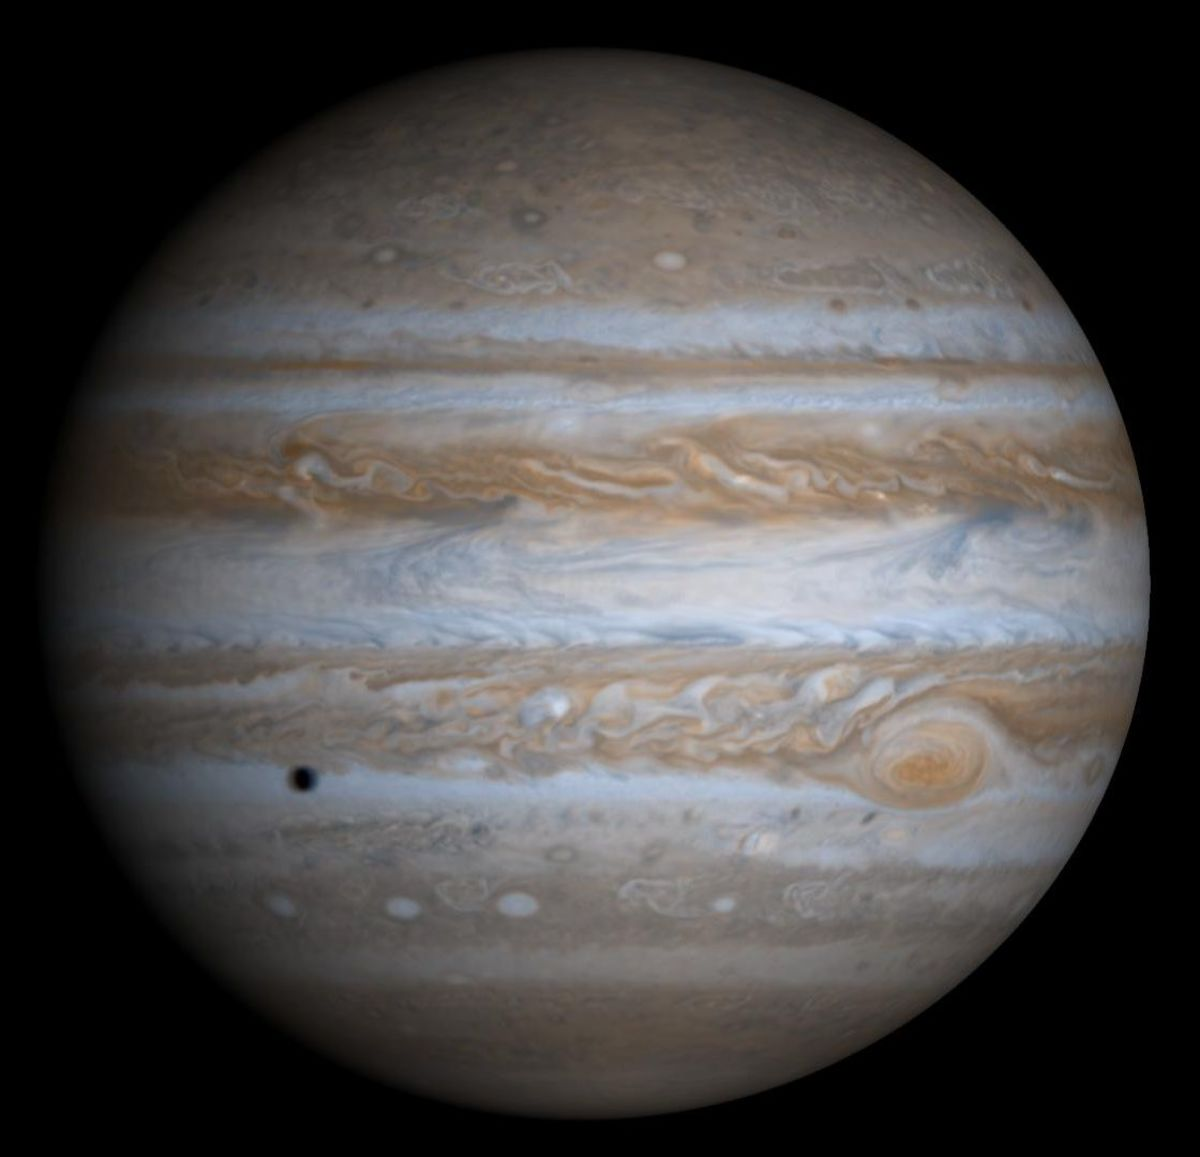 The largest planet in our solar system. You can see the shadow of Europa in the bottom left. Jupiter is one order of magnitude smaller than the Sun, and one order of magnitude larger than Earth.